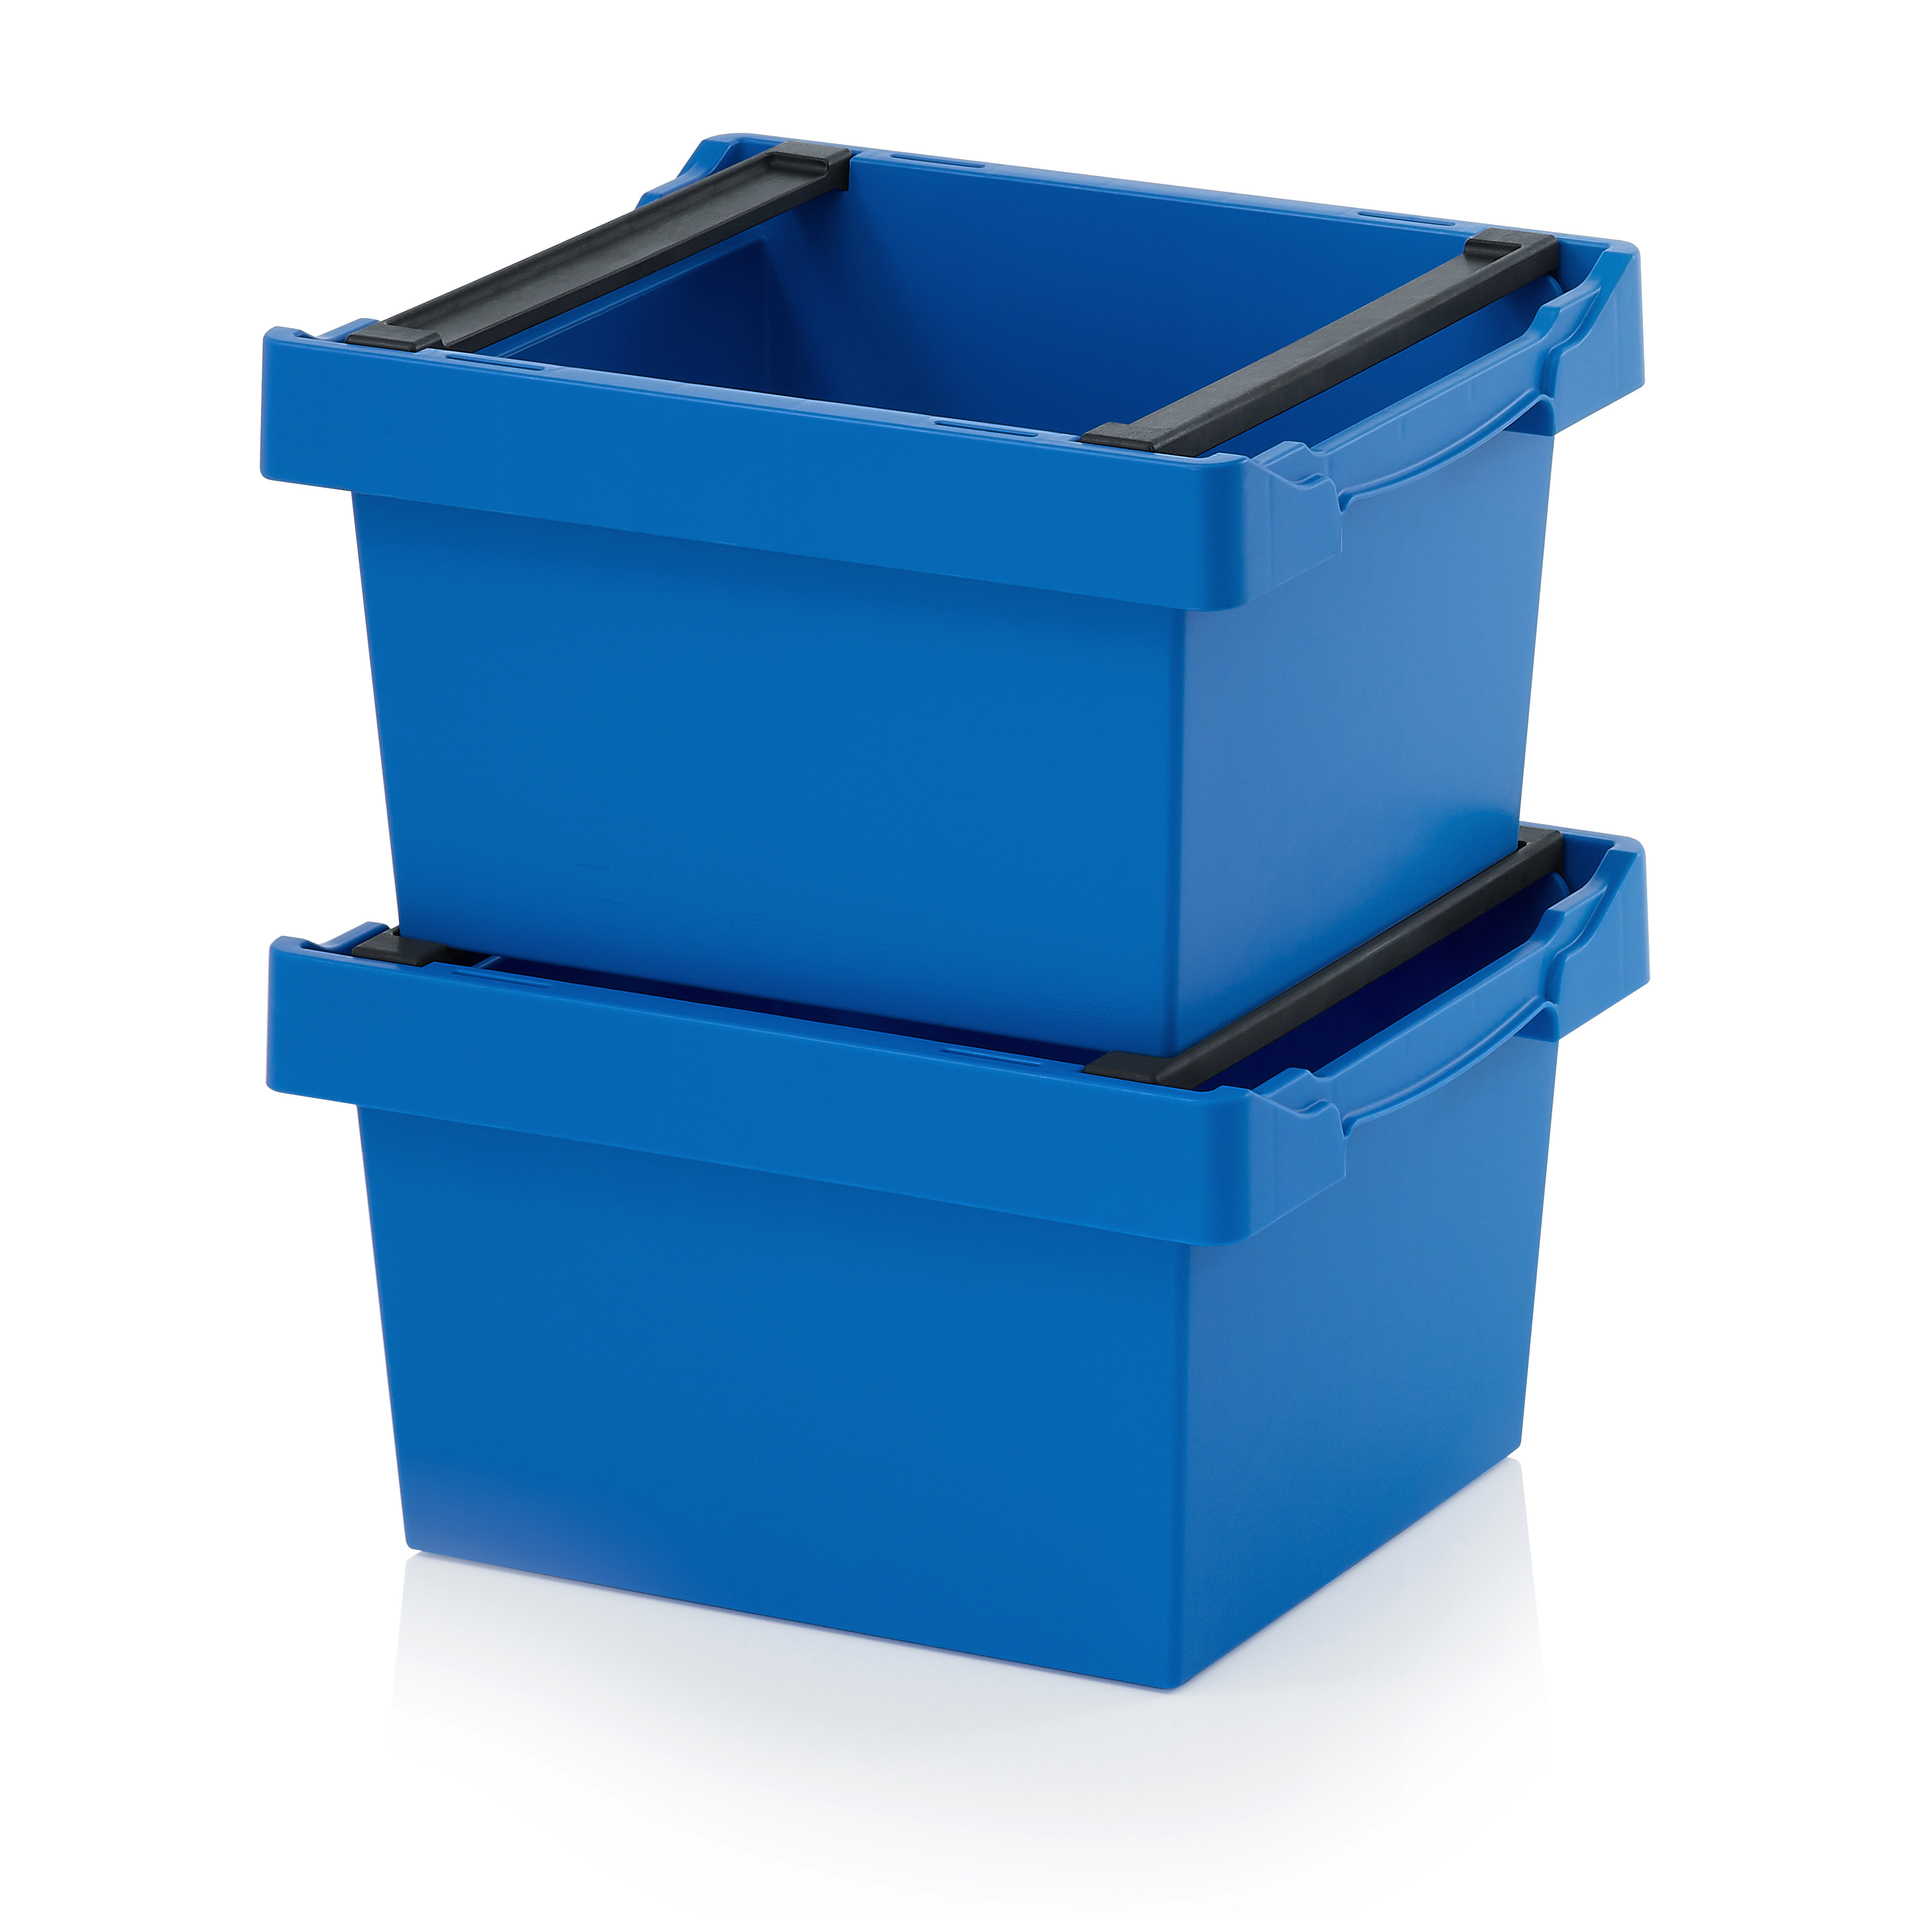 RC4220F_3 Reusable Containers - Plastic Mouldings Northern